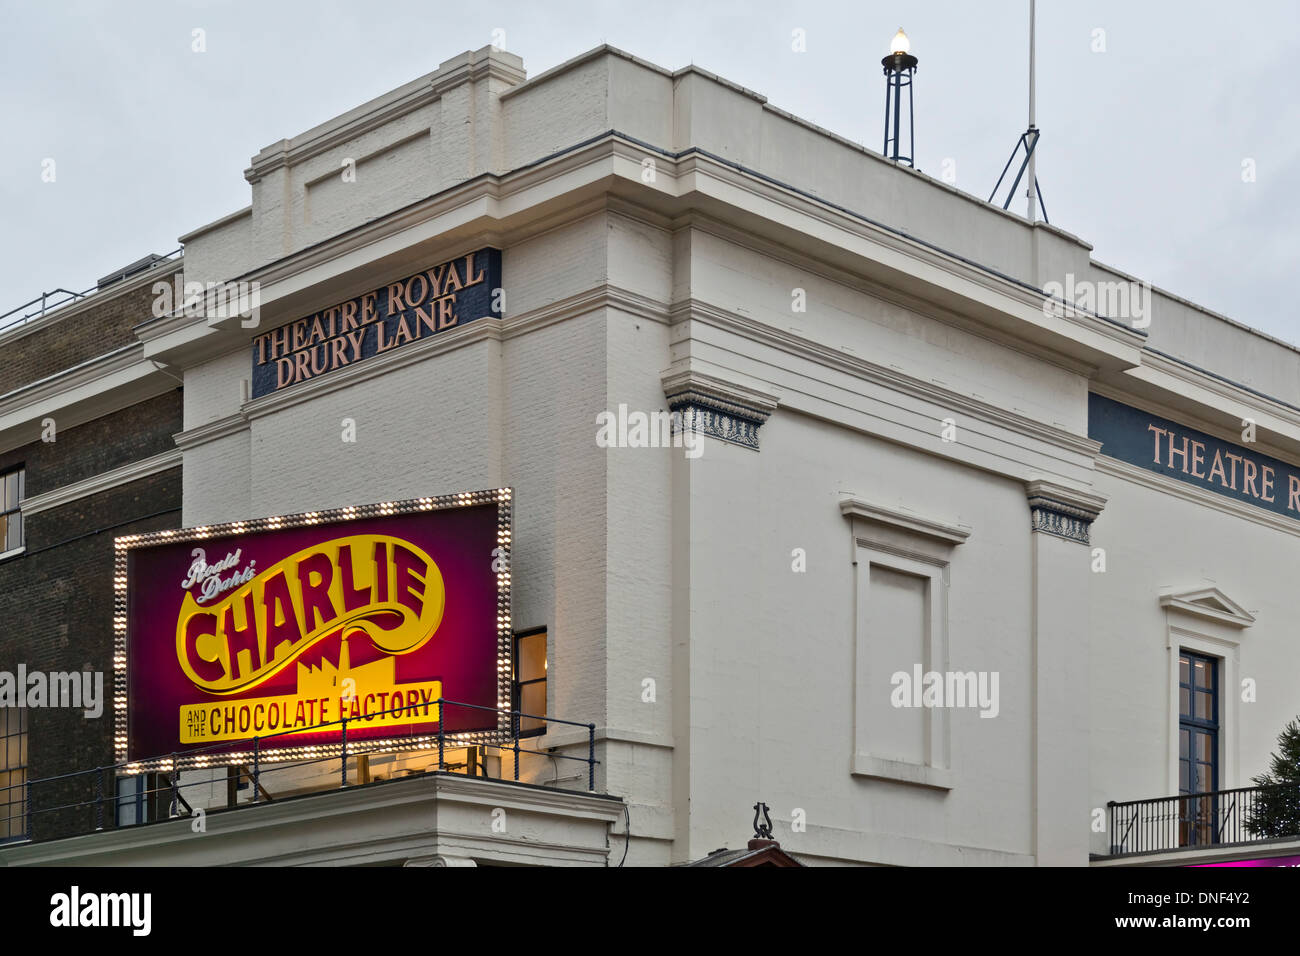 charlie and the chocolate factory stock photos u0026 charlie and the